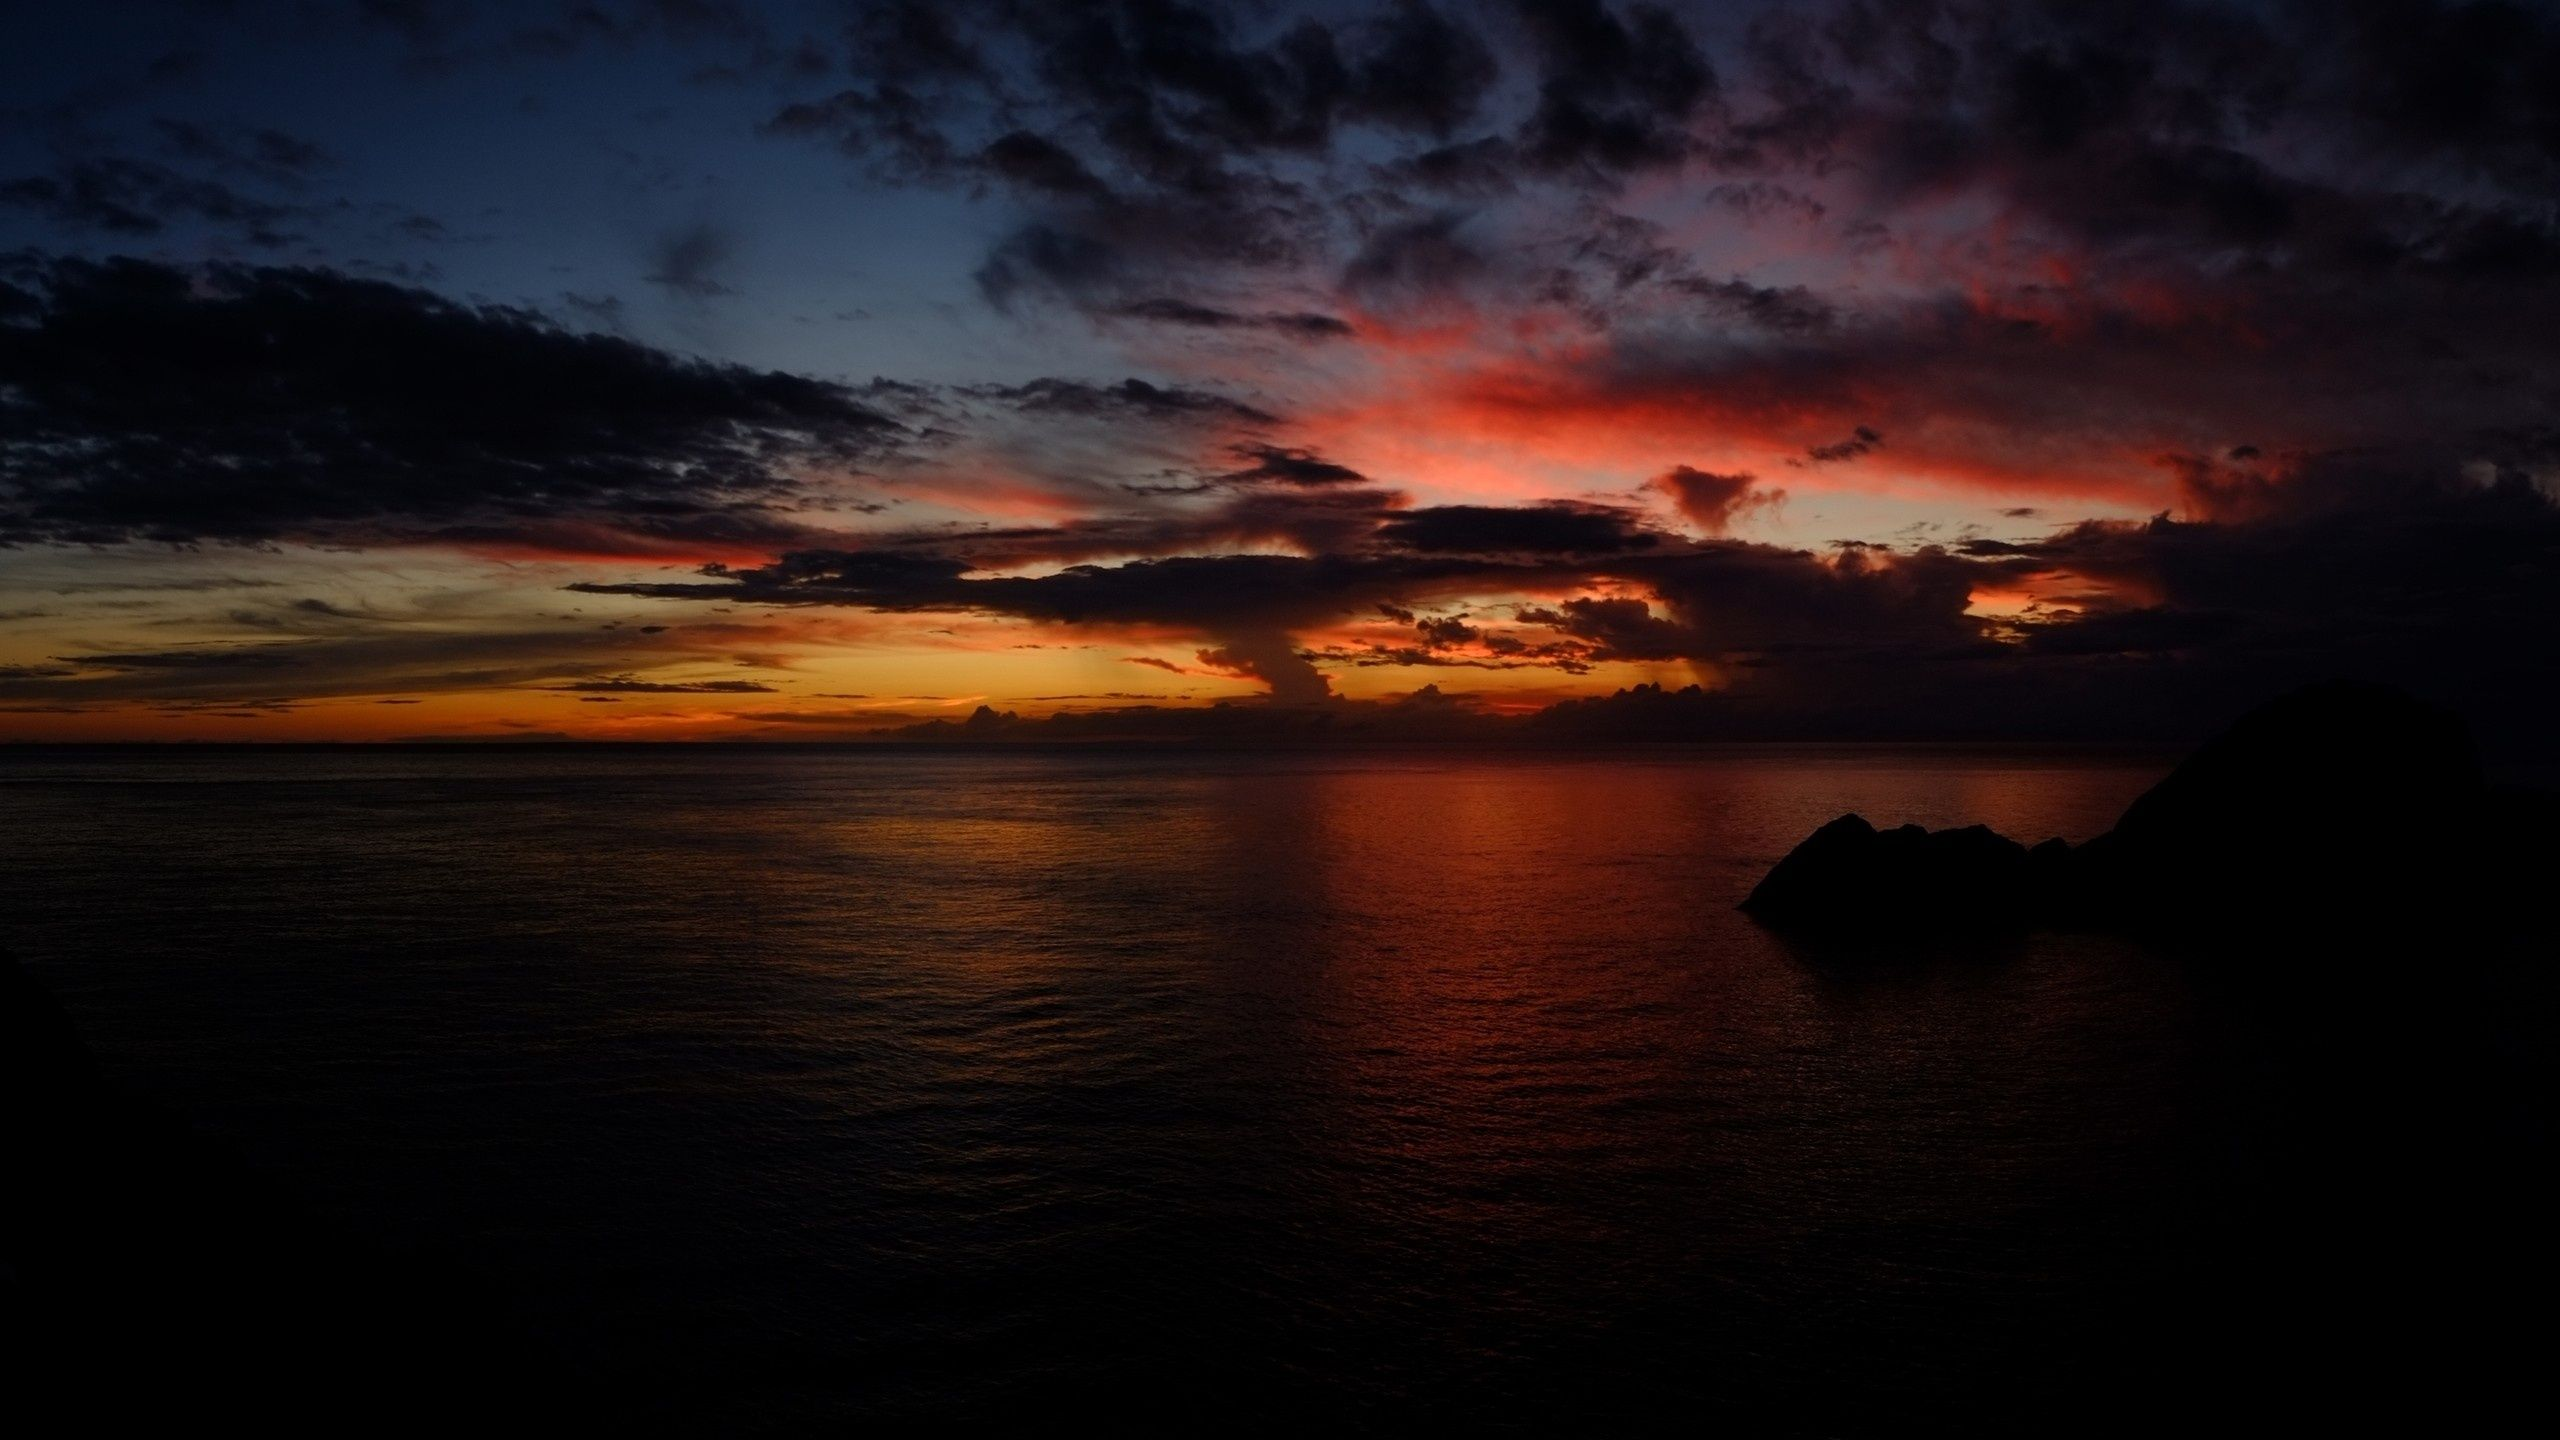 dark sunset hd 2560x1440 Sunset Clouds & Dark Ocean